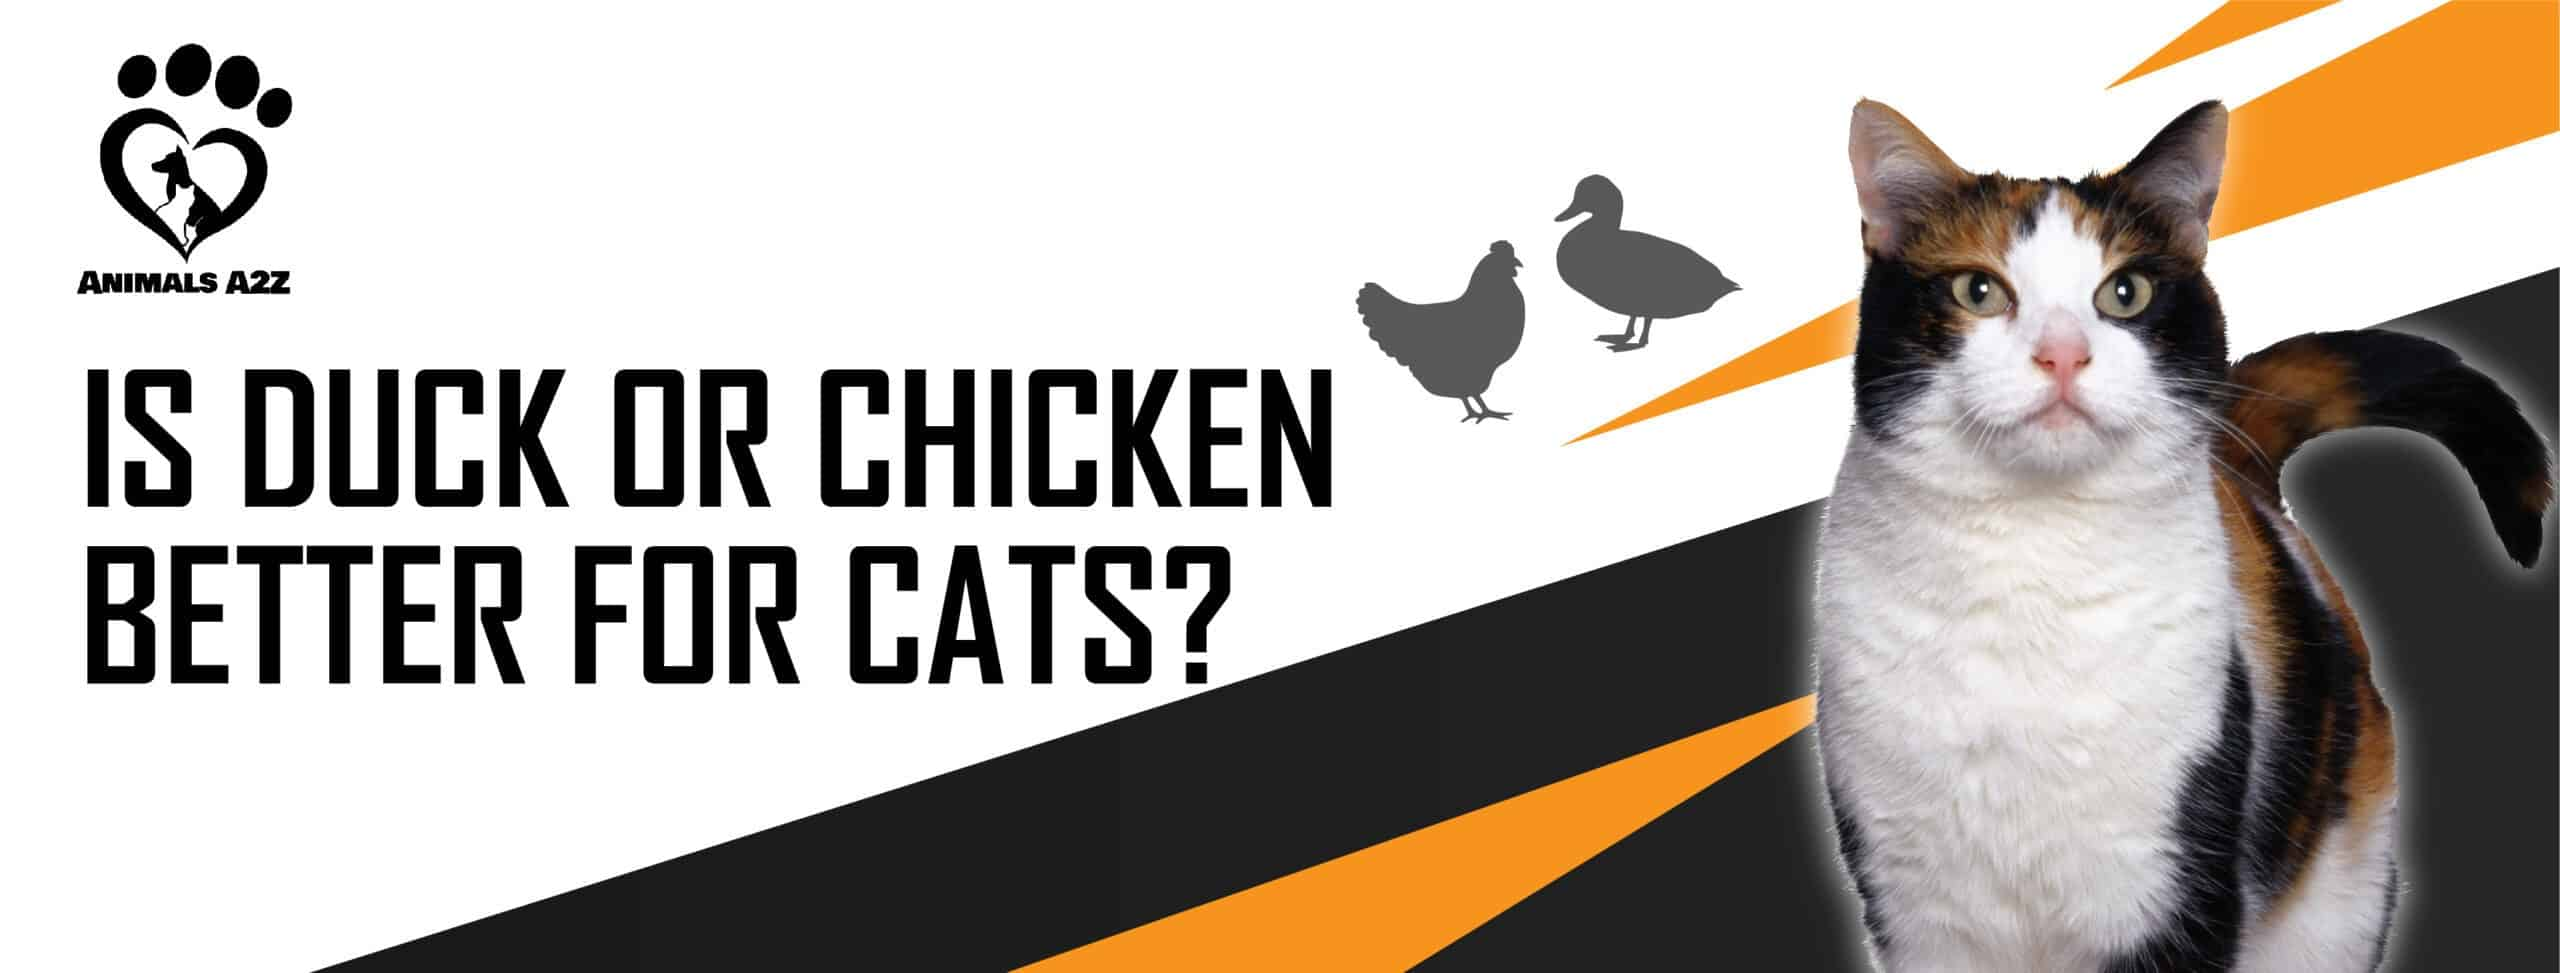 Is duck or chicken better for cats